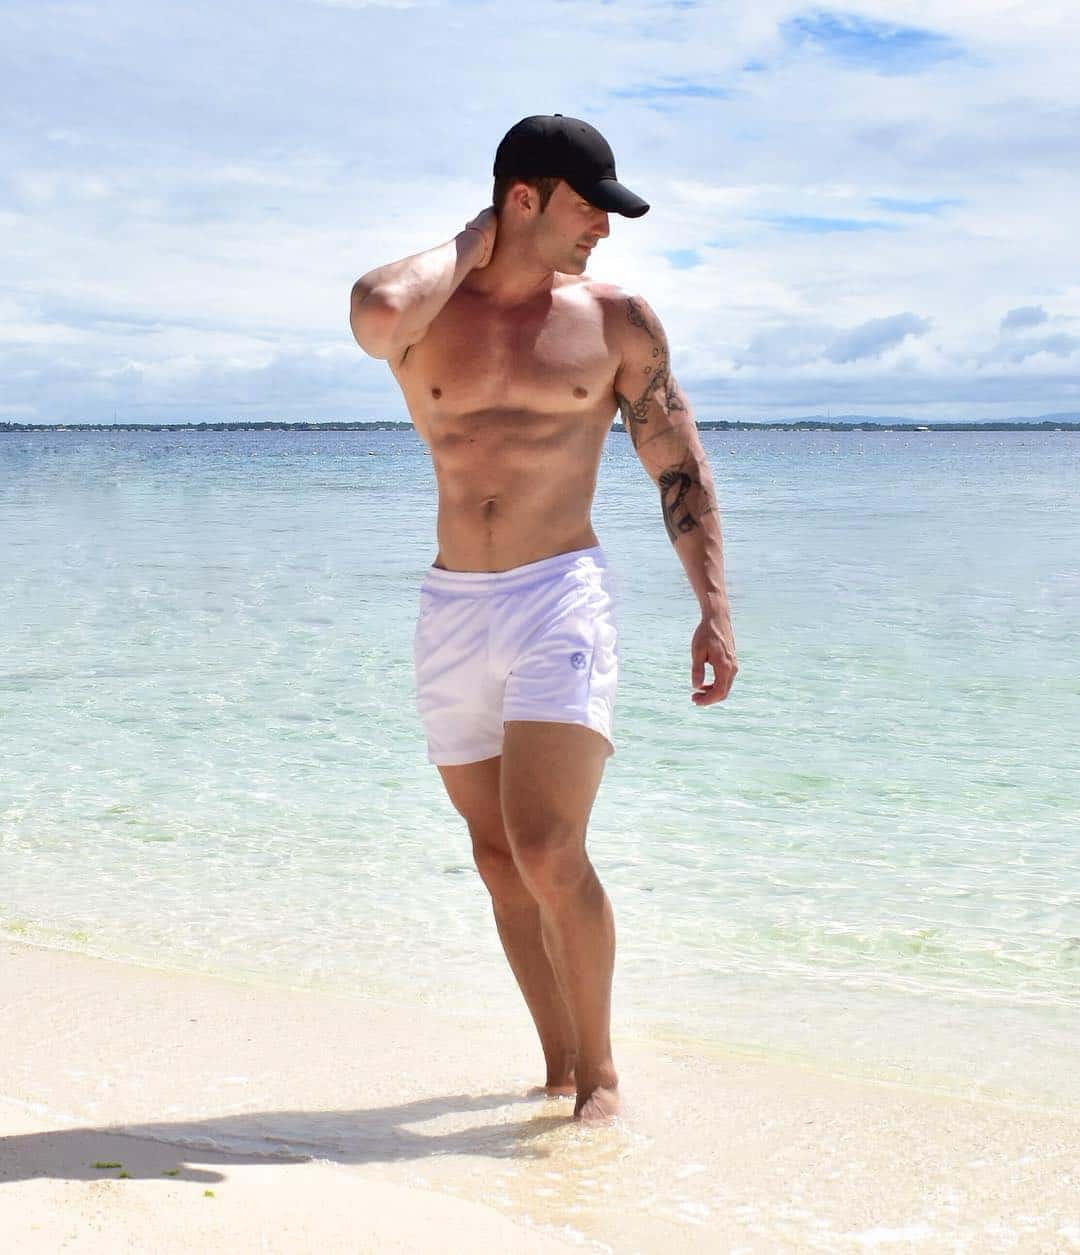 Mens Shorts Styles 2021: Latest Shorts for Men 2021 (35+ Images + Videos)